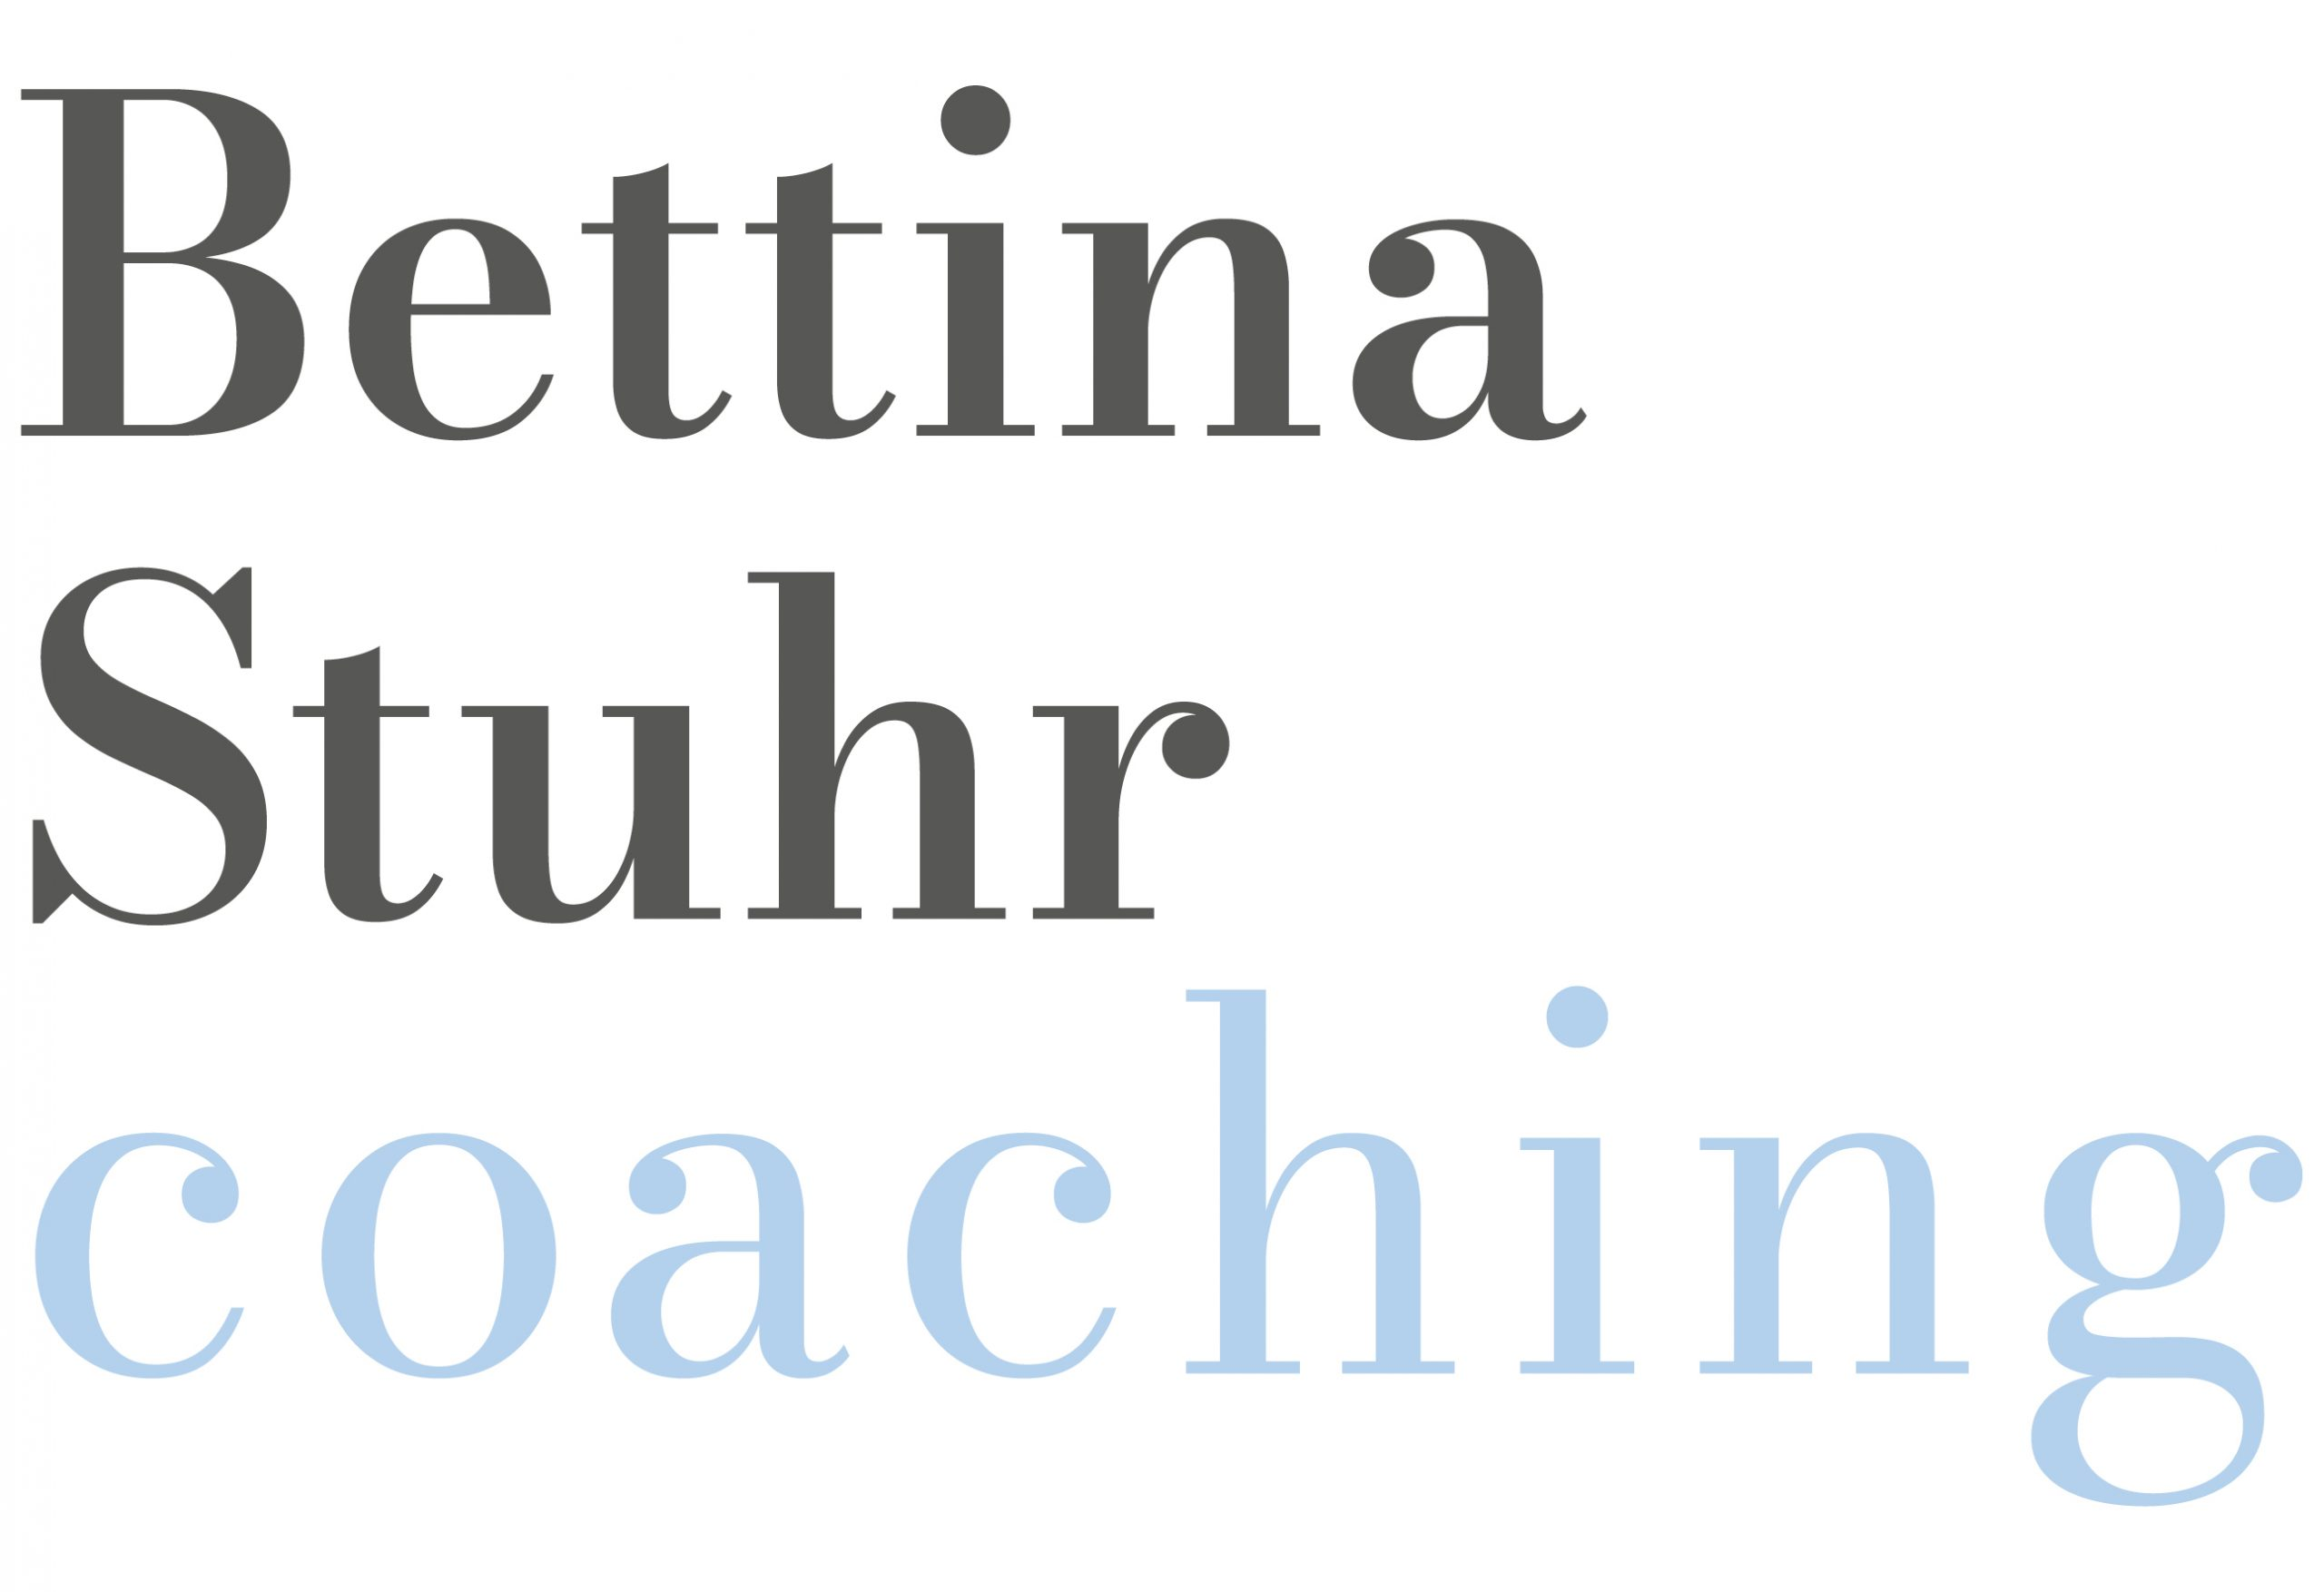 Bettina Stuhr Coaching